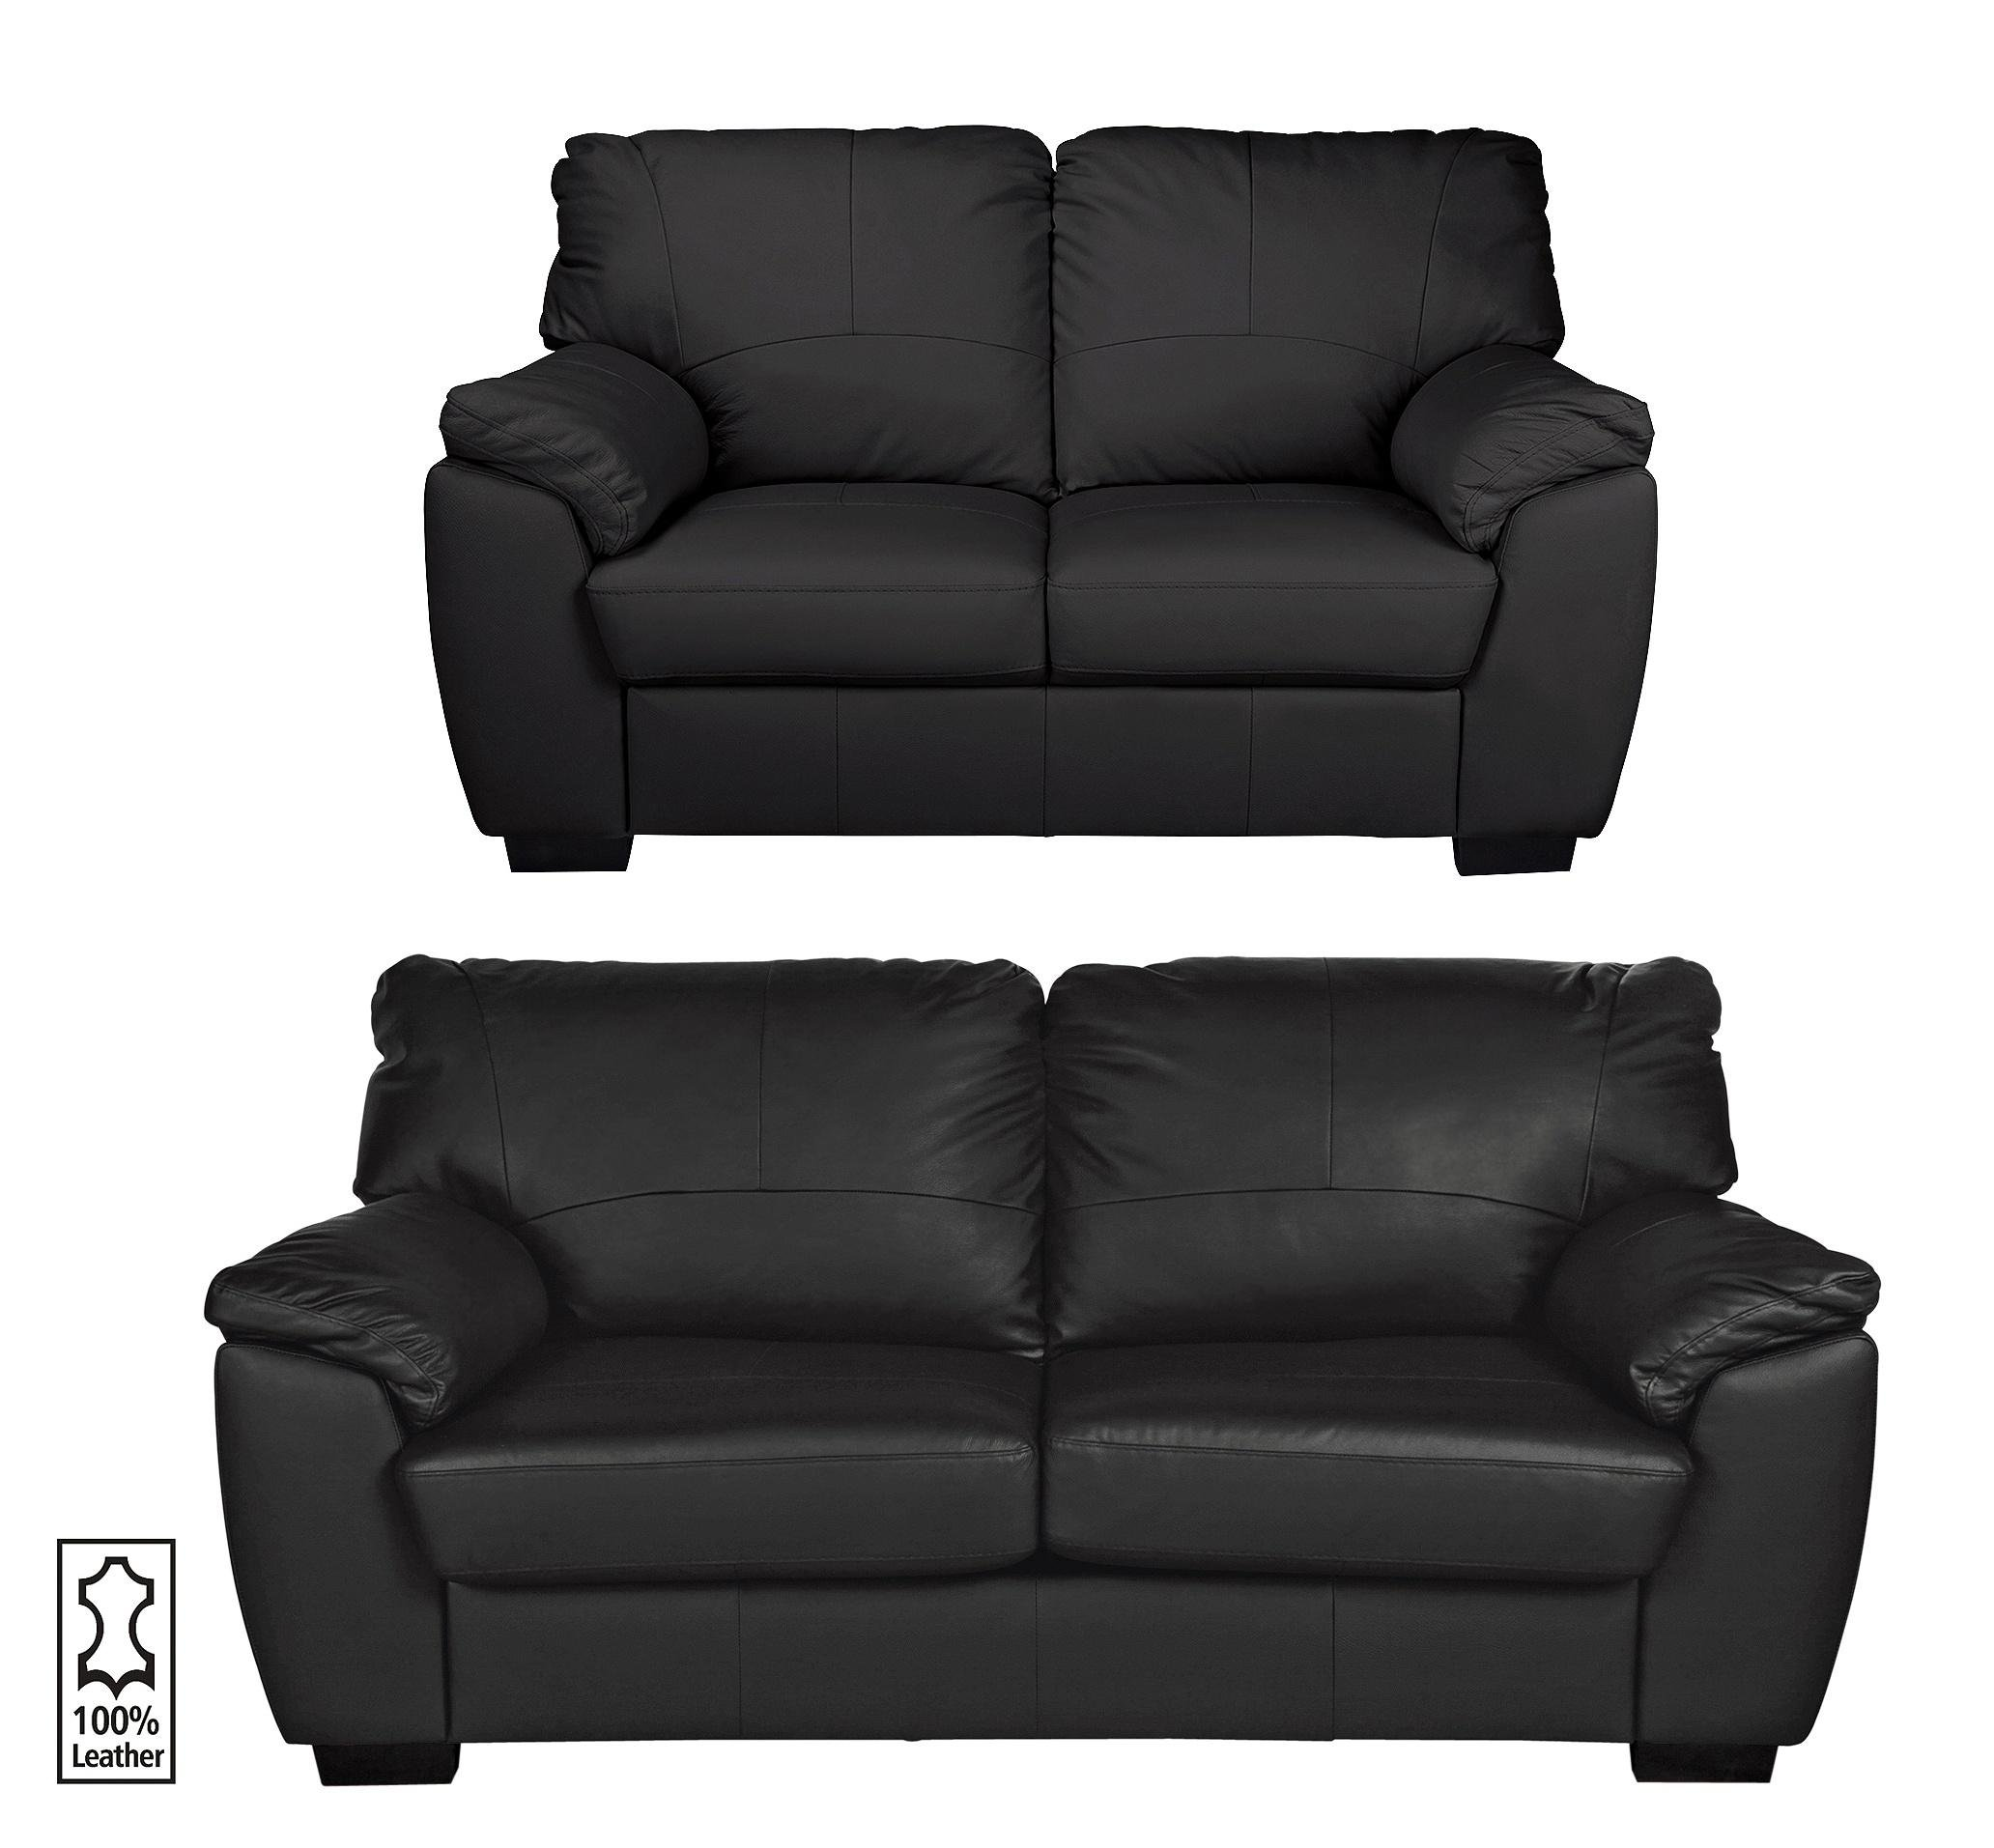 Collection Milano Leather 3 Seater u0026 2 Seater Sofa - Black  sc 1 st  Argos & Buy Collection Milano Leather 3 Seater u0026 2 Seater Sofa - Black at ... islam-shia.org